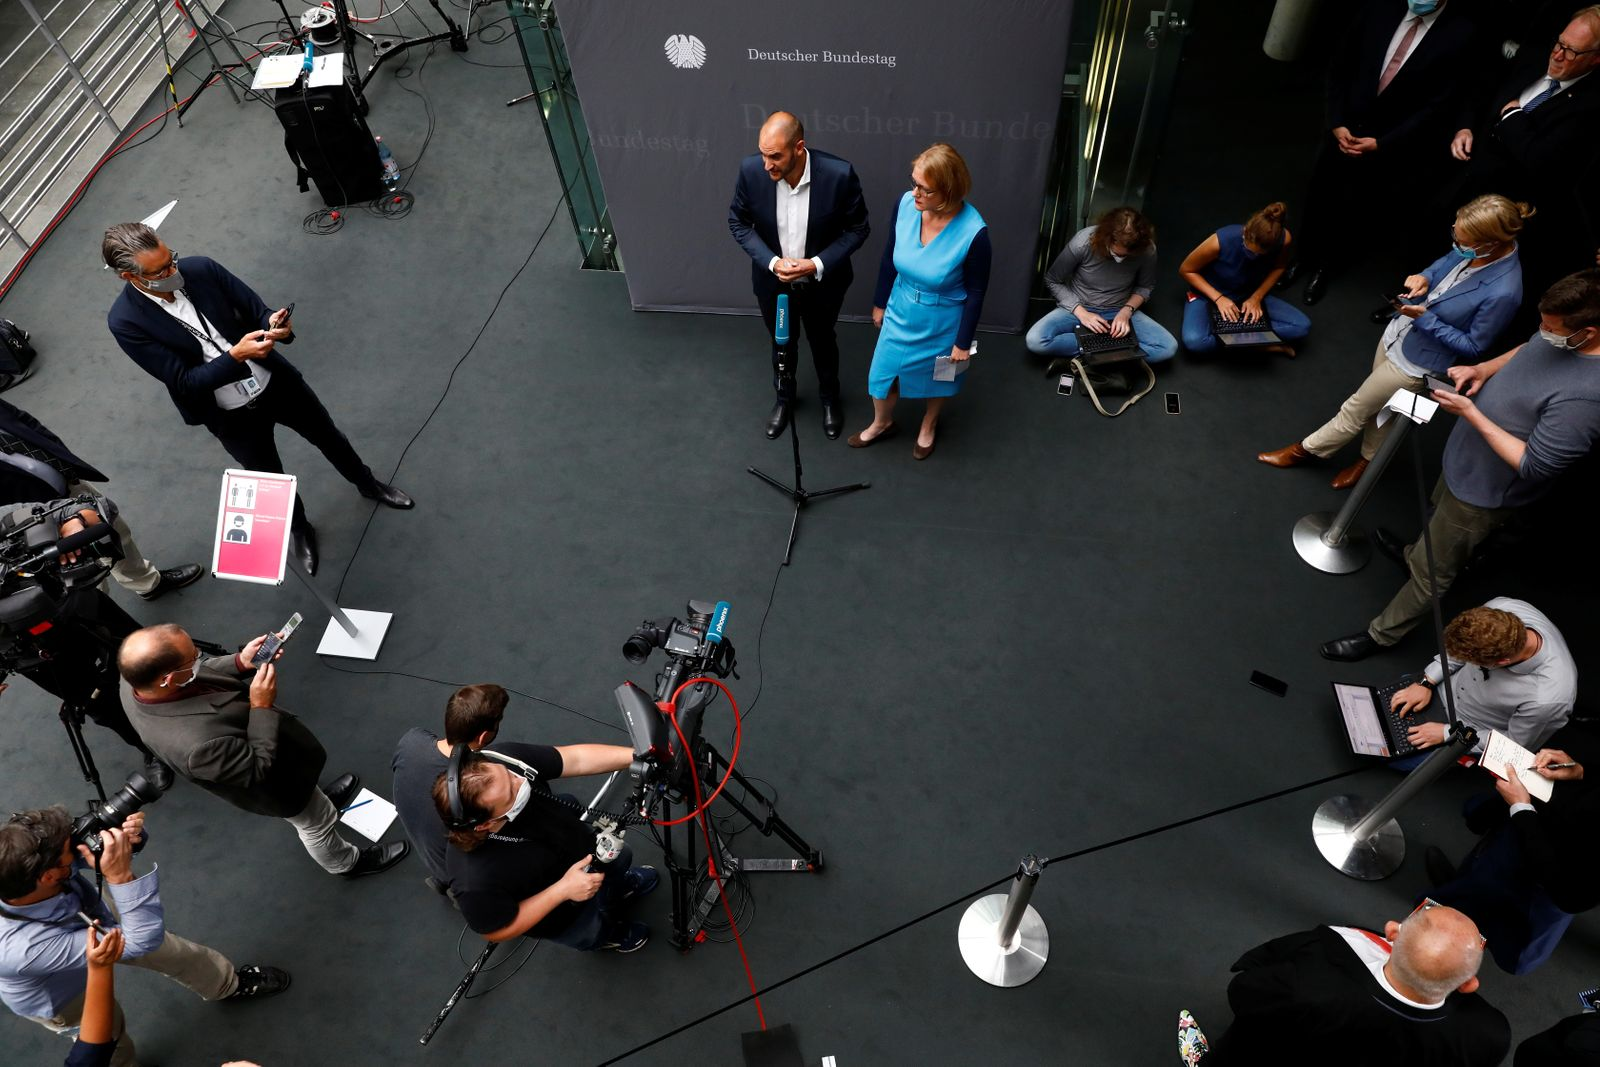 Germany's Green Party Bundestag Member Danyal Bayaz and Lisa Paus of the Green party, give a statement to the media, after an extraordinary meeting on the Wirecard scandal held by the German parliament's financial committee, in Berlin